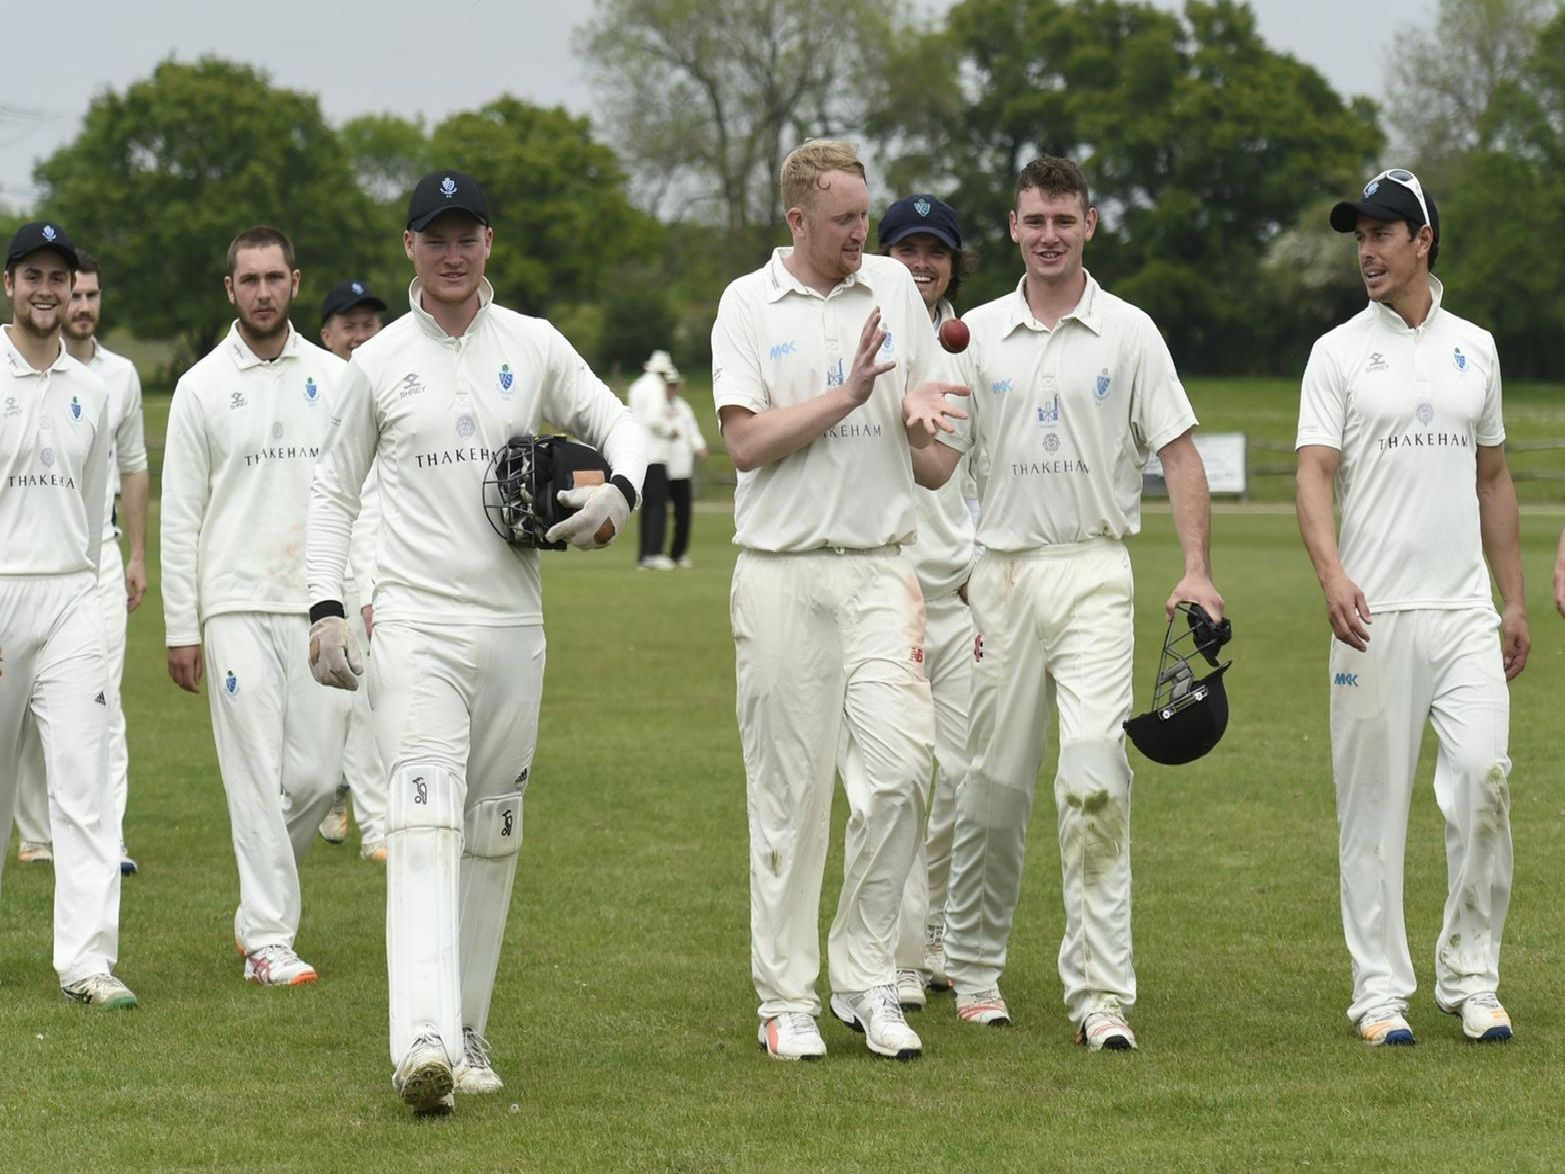 Billingshurst cricketers walk off after bowling Ifield out for 95